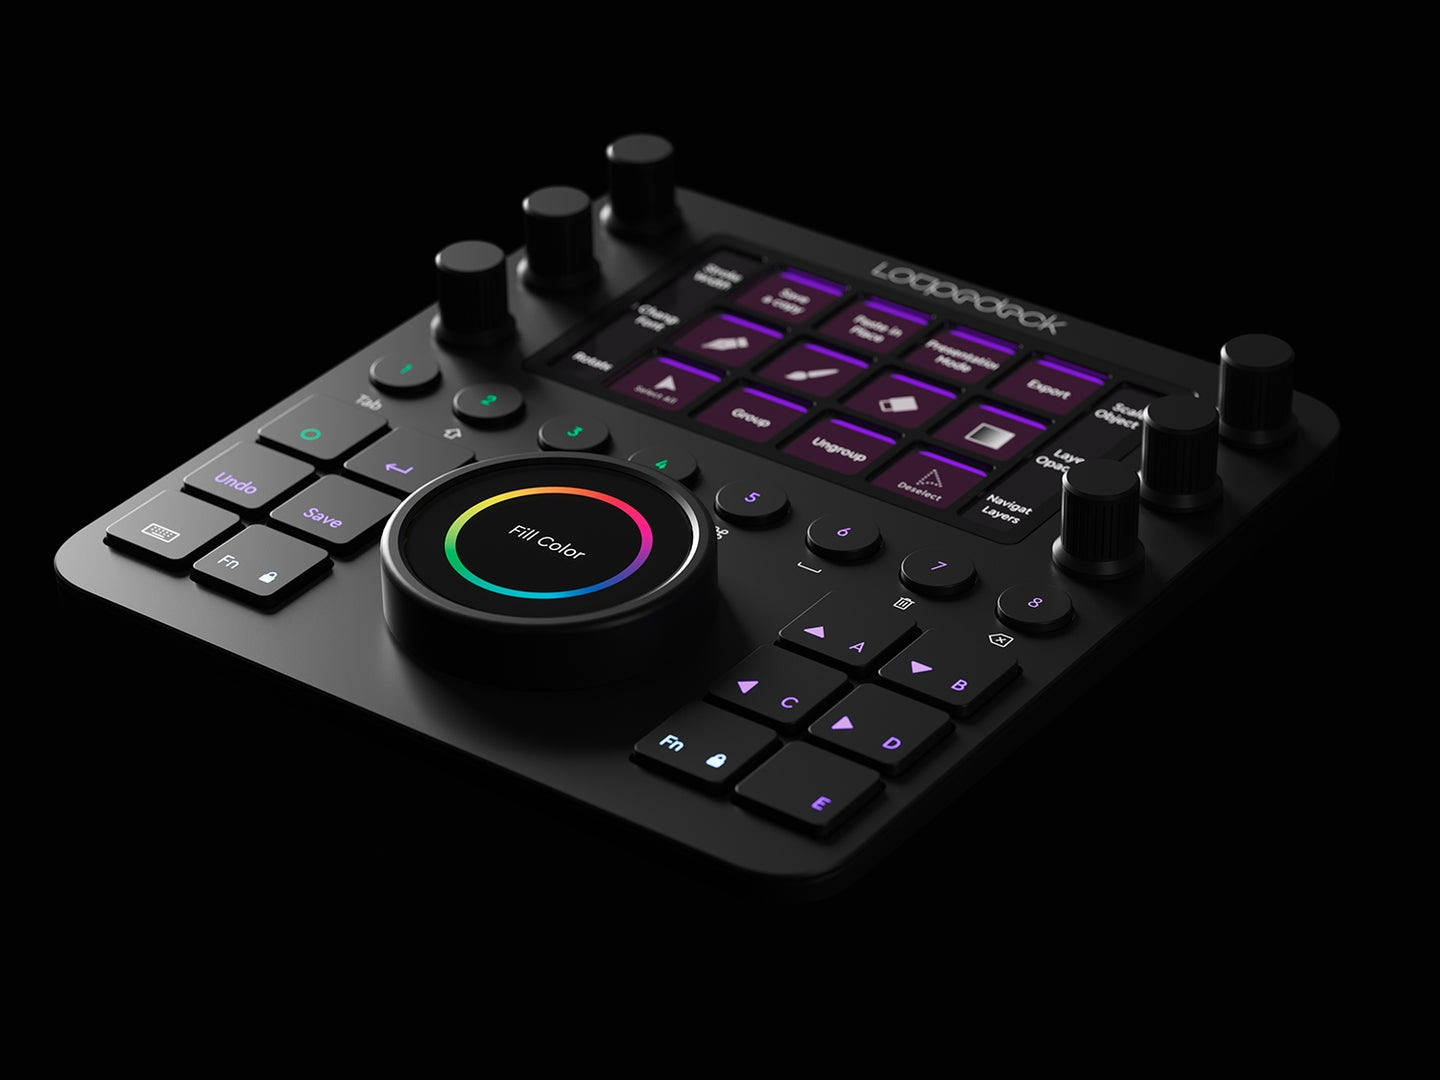 Loupedeck Creative Tool is a new compact tactile editing tool with knobs and buttons